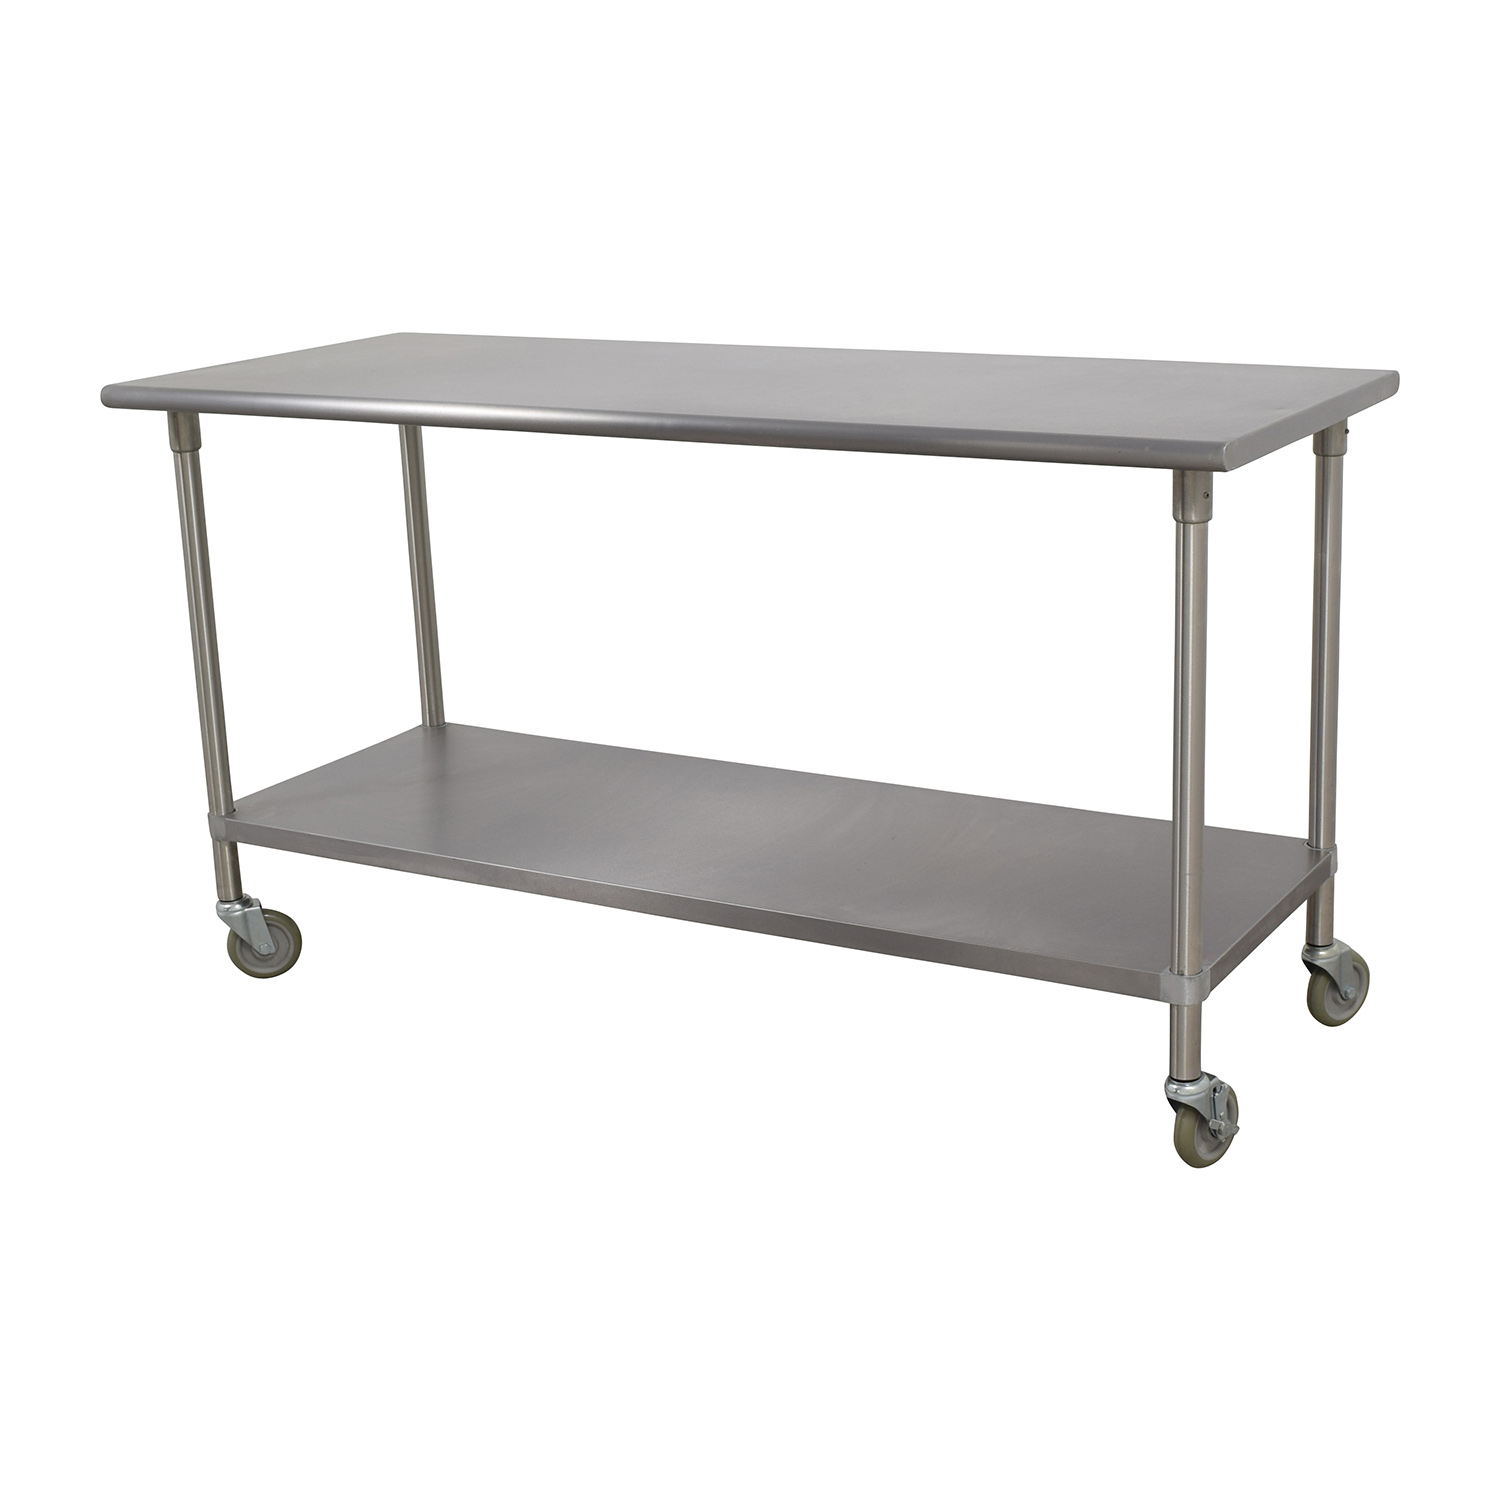 buy Bowery Kitchen Stainless Steel Table Bowery Kitchen Utility Tables